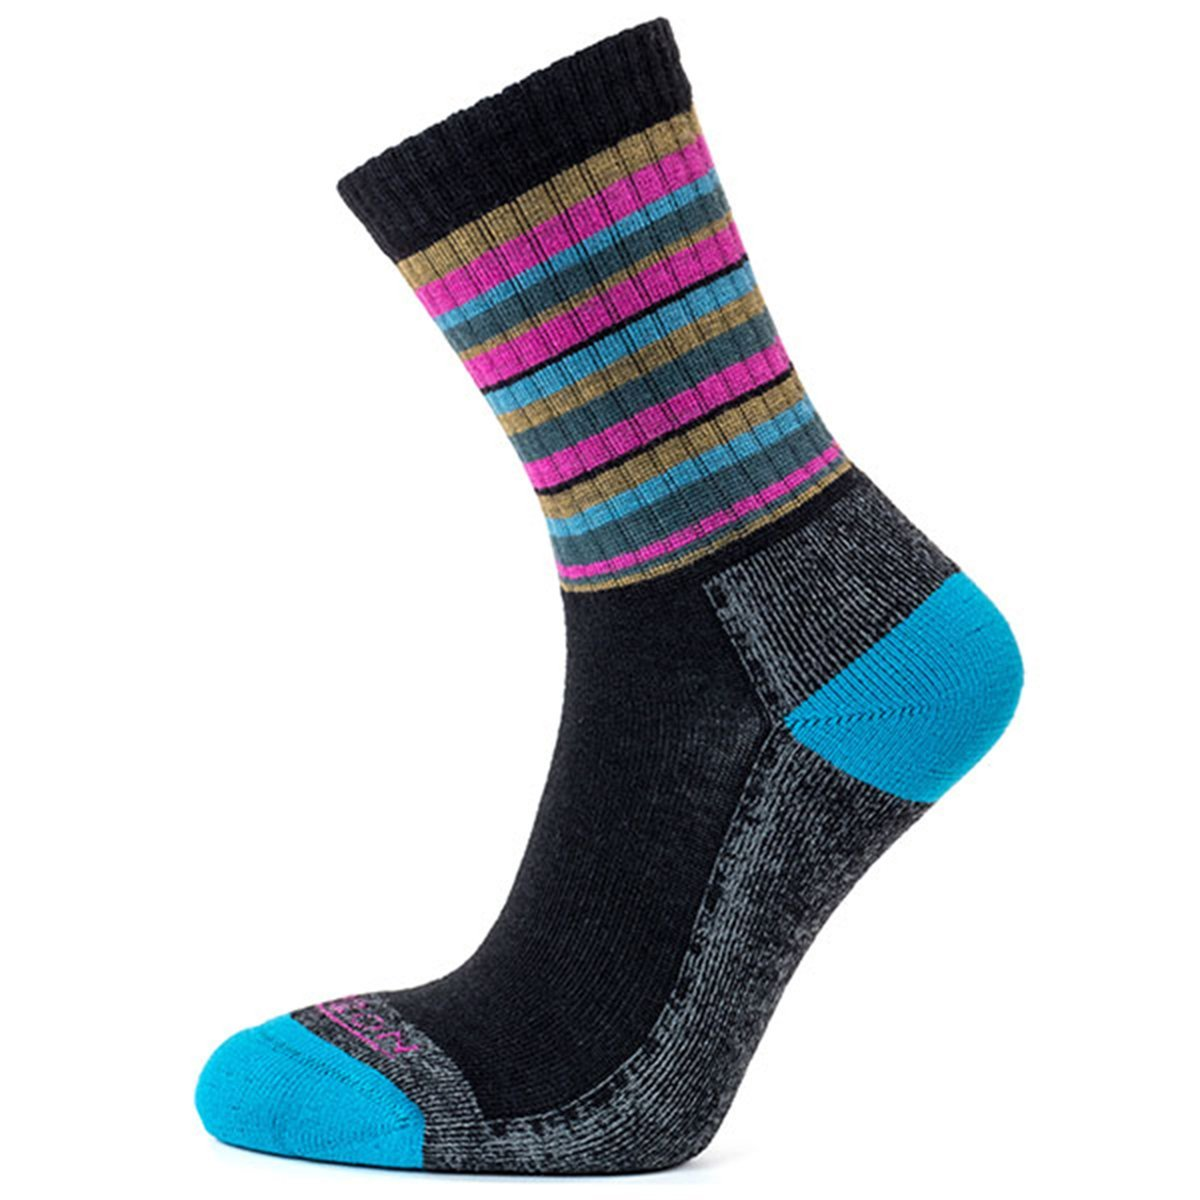 Horizon Socks » Premium Micro Crew | Women's Light Hiking Sock